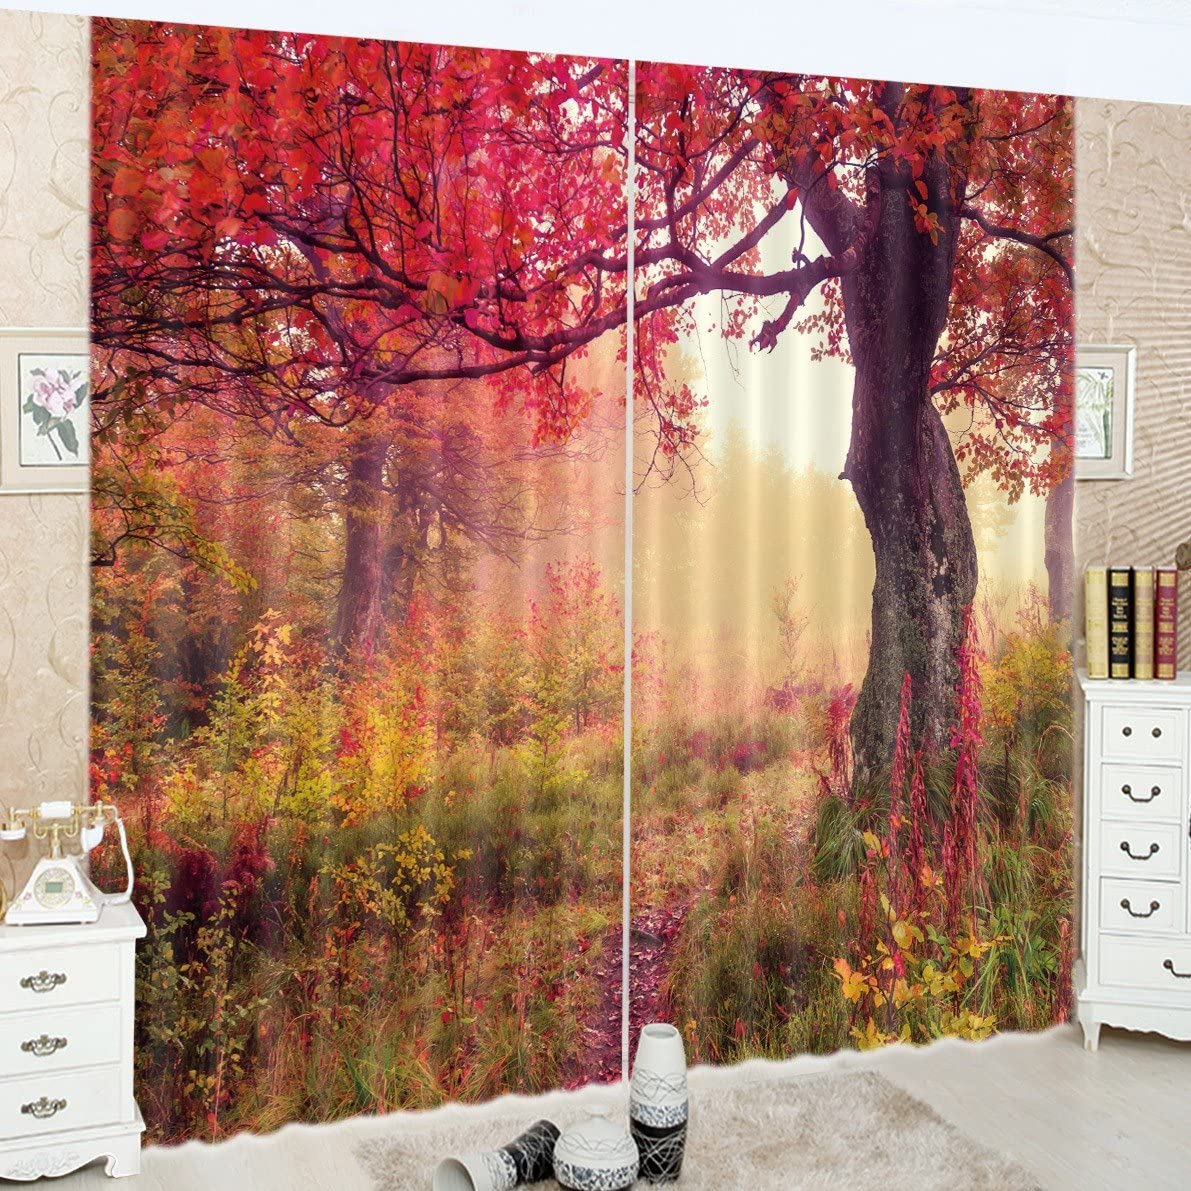 LB Teen Kids Decor Collection,2 Panels Room Darkening Blackout Curtains,Wilderness of Autumn Fall Scenery 3D Window Treatment Living Room Bedroom Window Drapes,28 by 65 inch Length